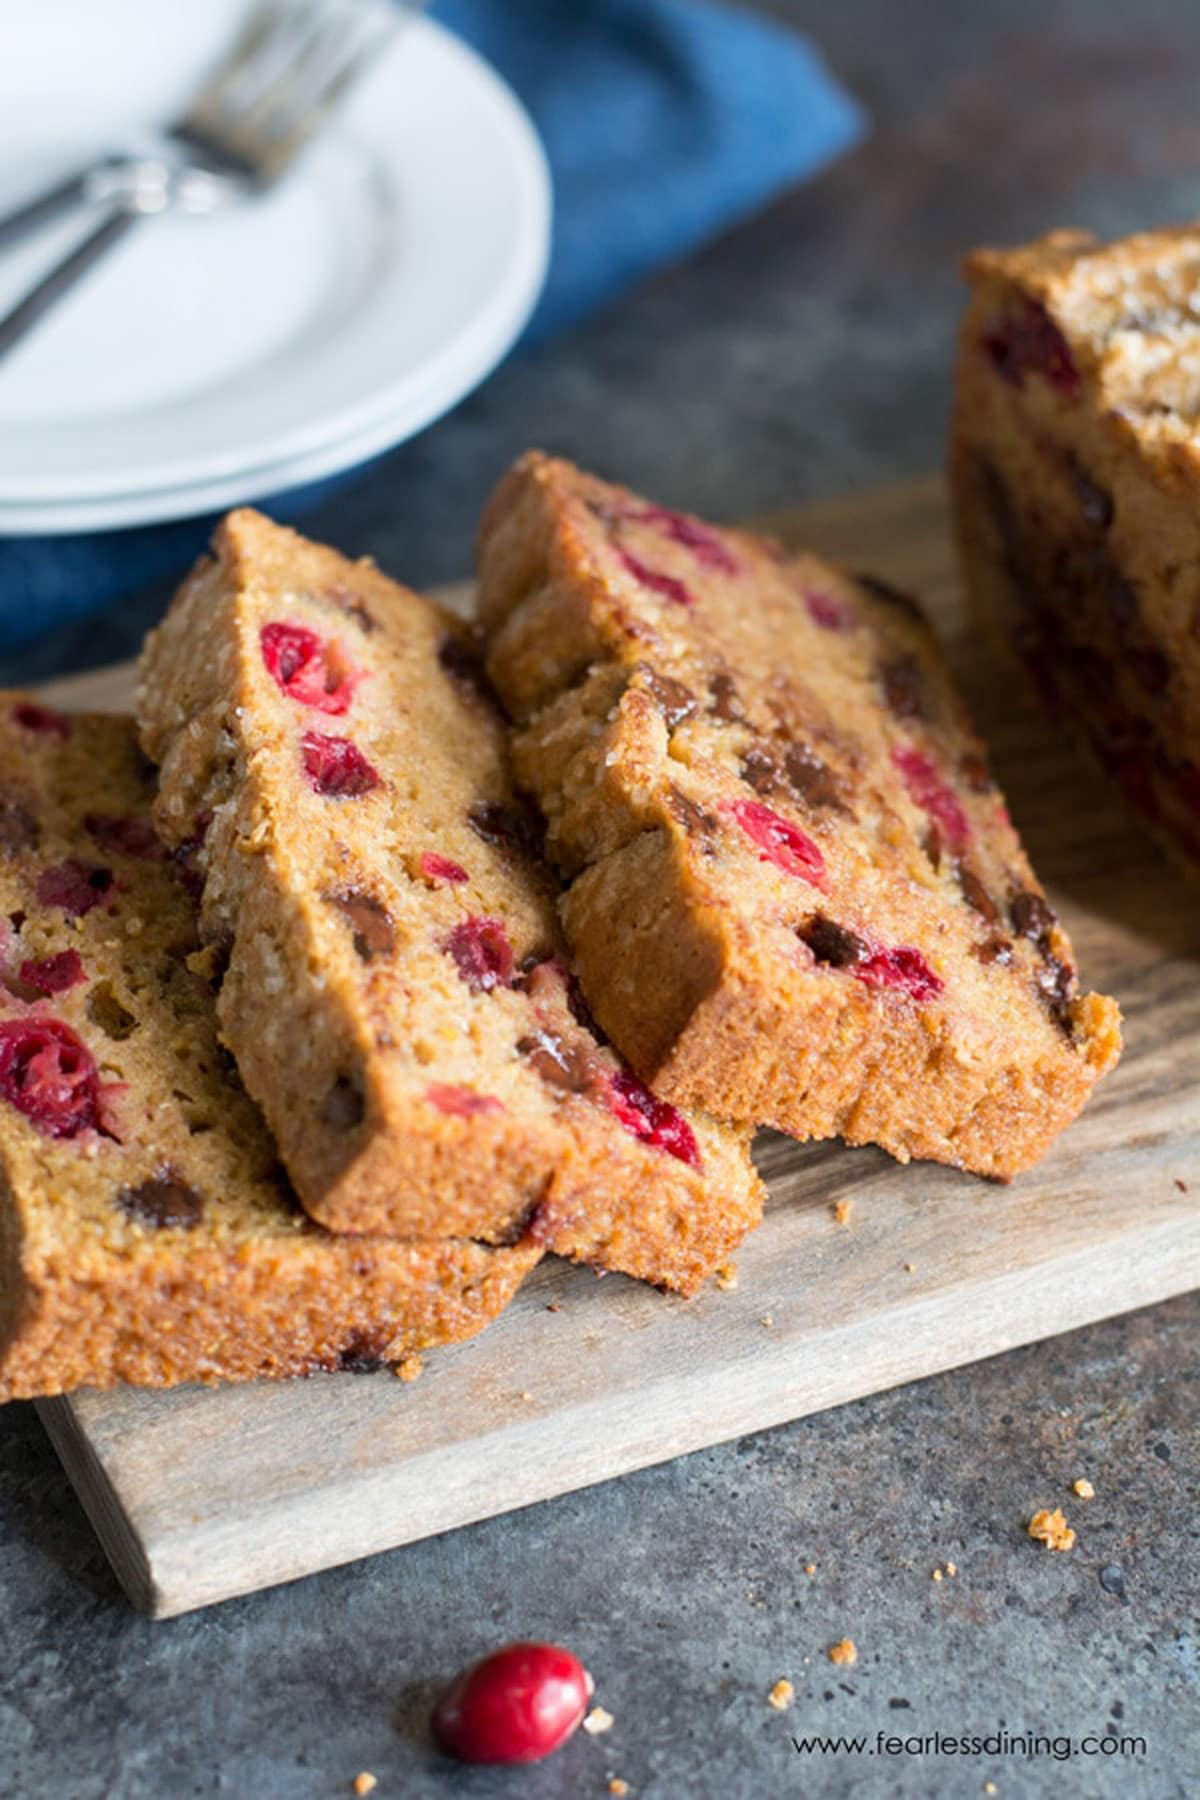 A sliced cranberry chocolate chip loaf on a cutting board